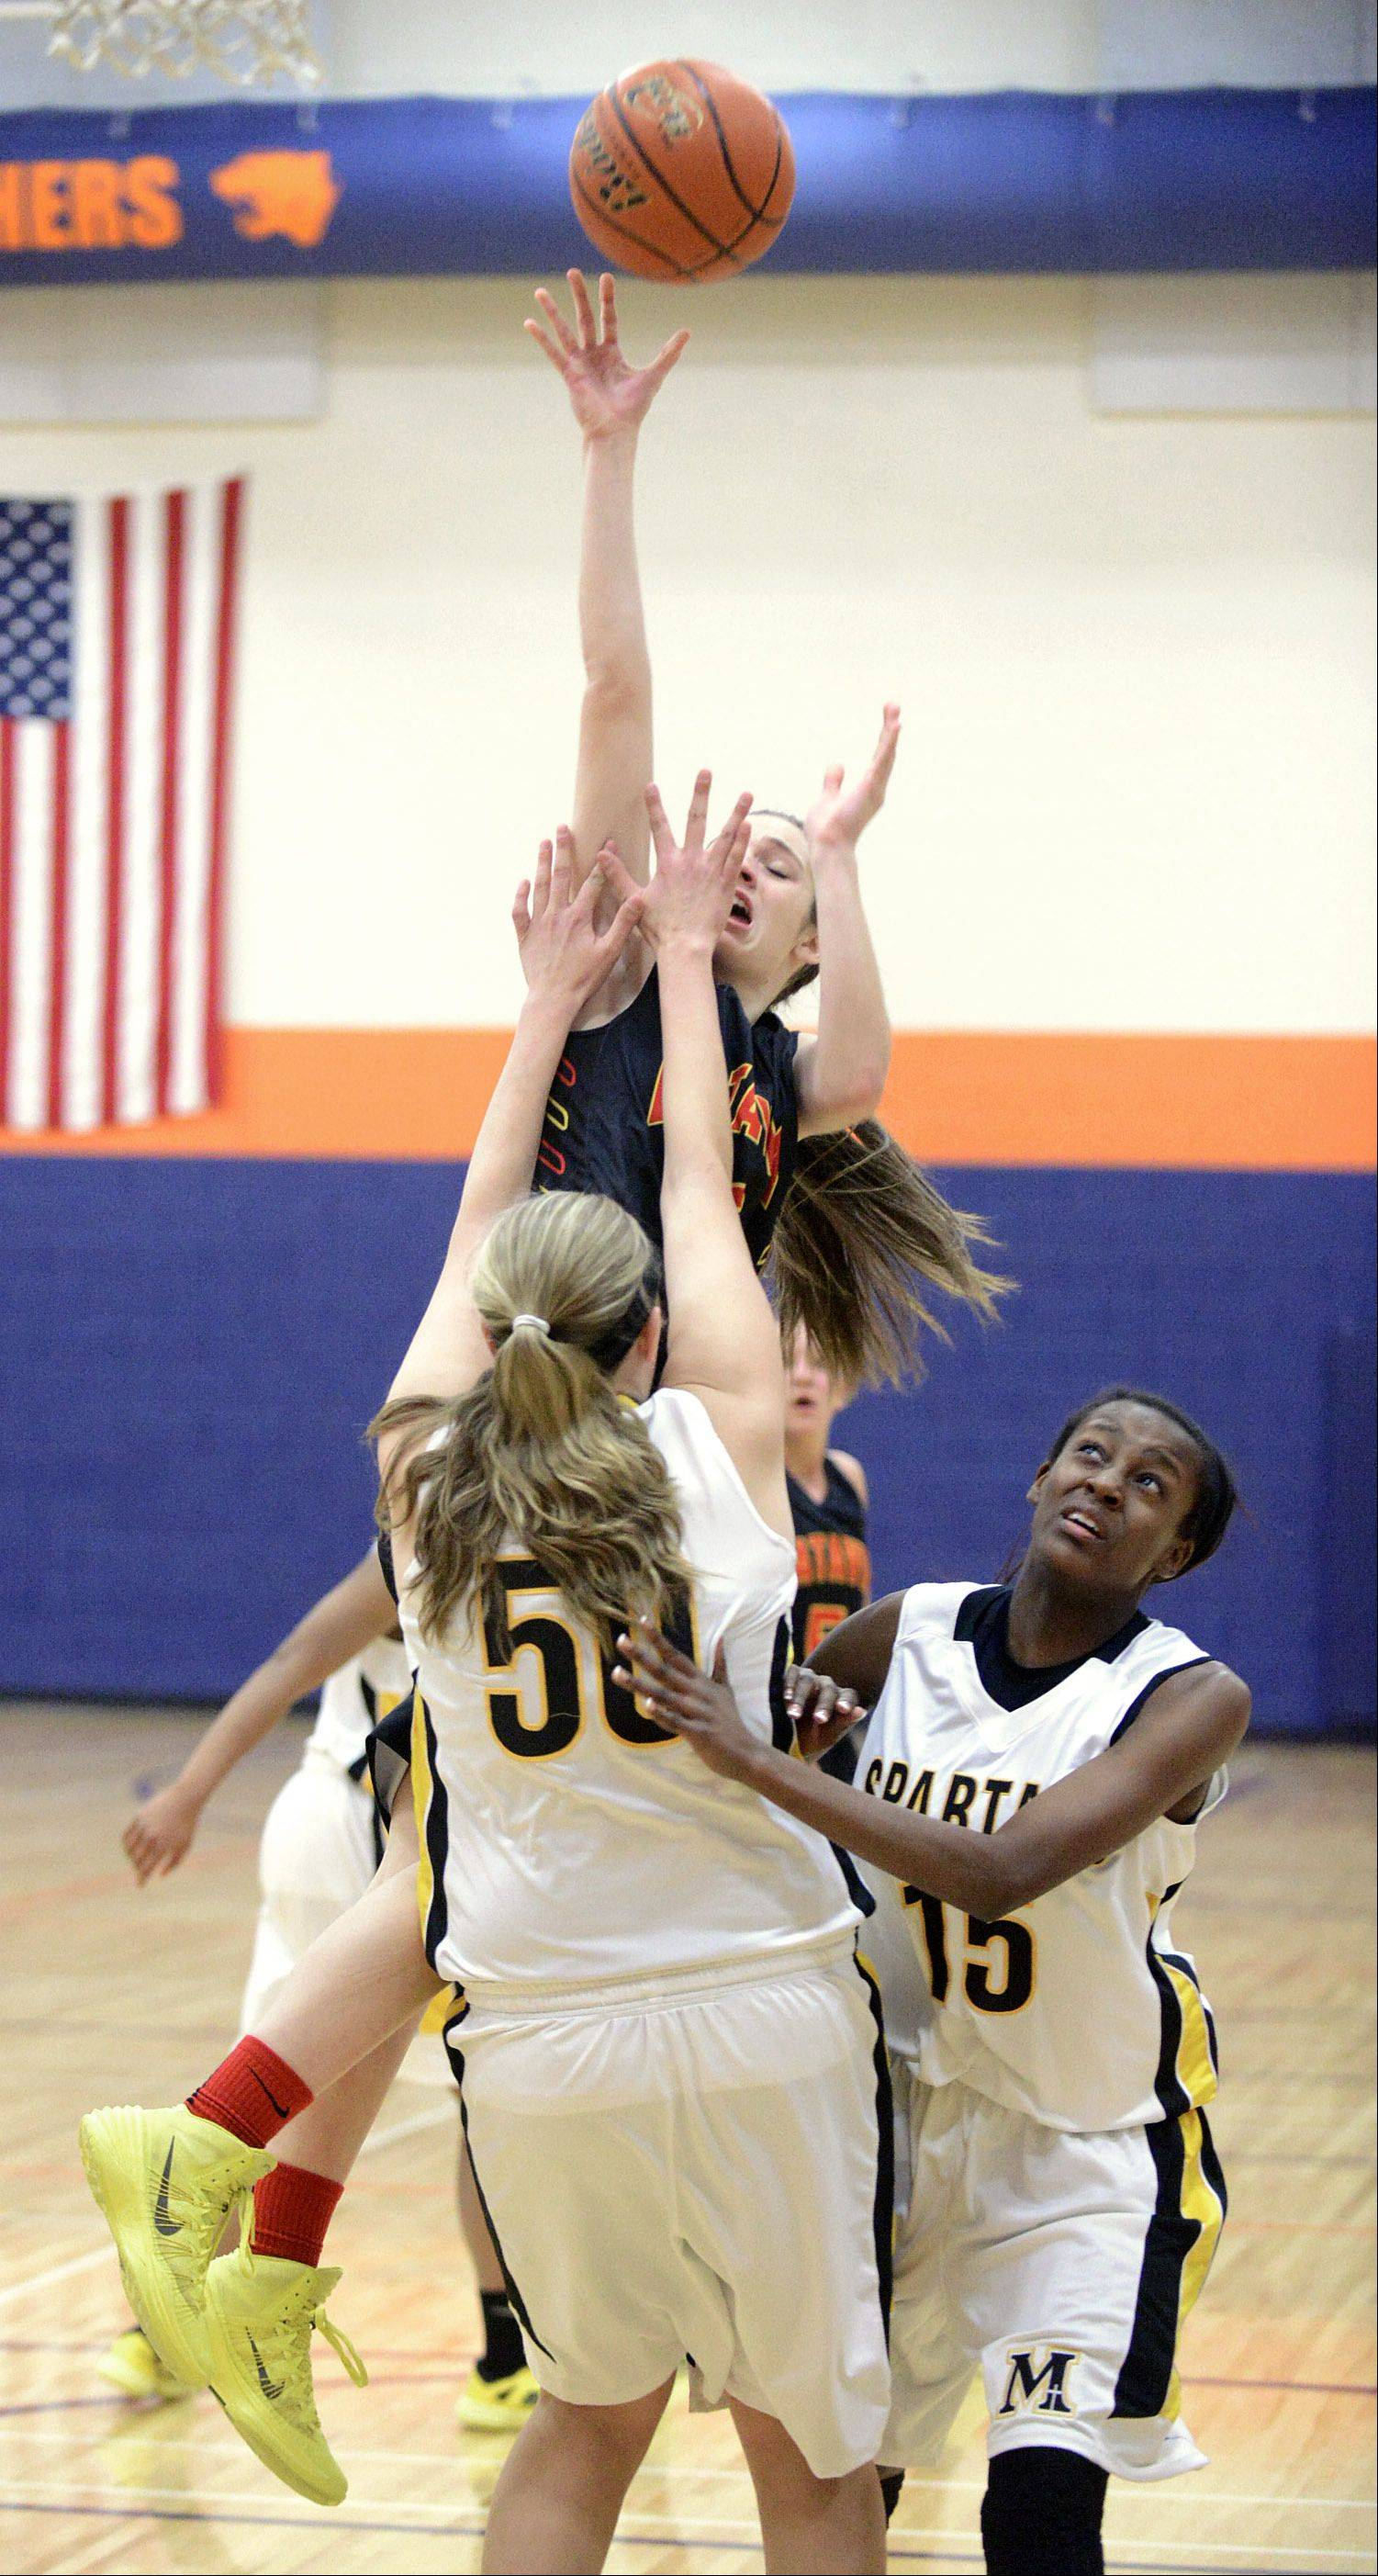 Batavia's Mackenzie Foster shoots over Marian Catholic's Kaitlyn Sedor in the first quarter.